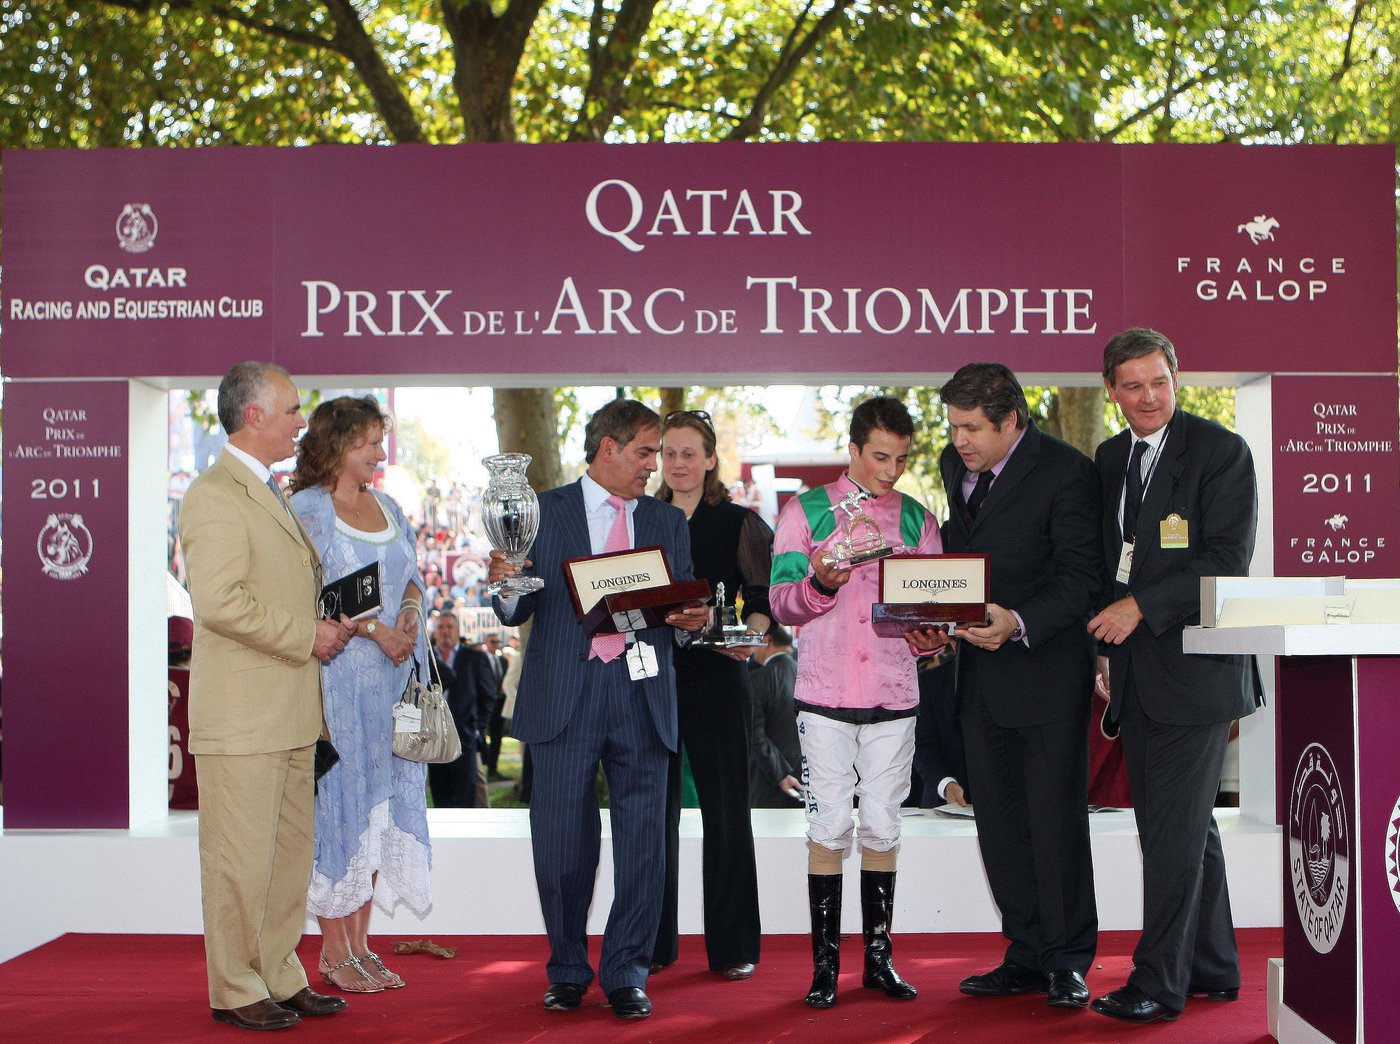 Longines Flat Racing Event: Recordbreaker Danedream wins the Qatar Prix de l'Arc de Triomphe 3